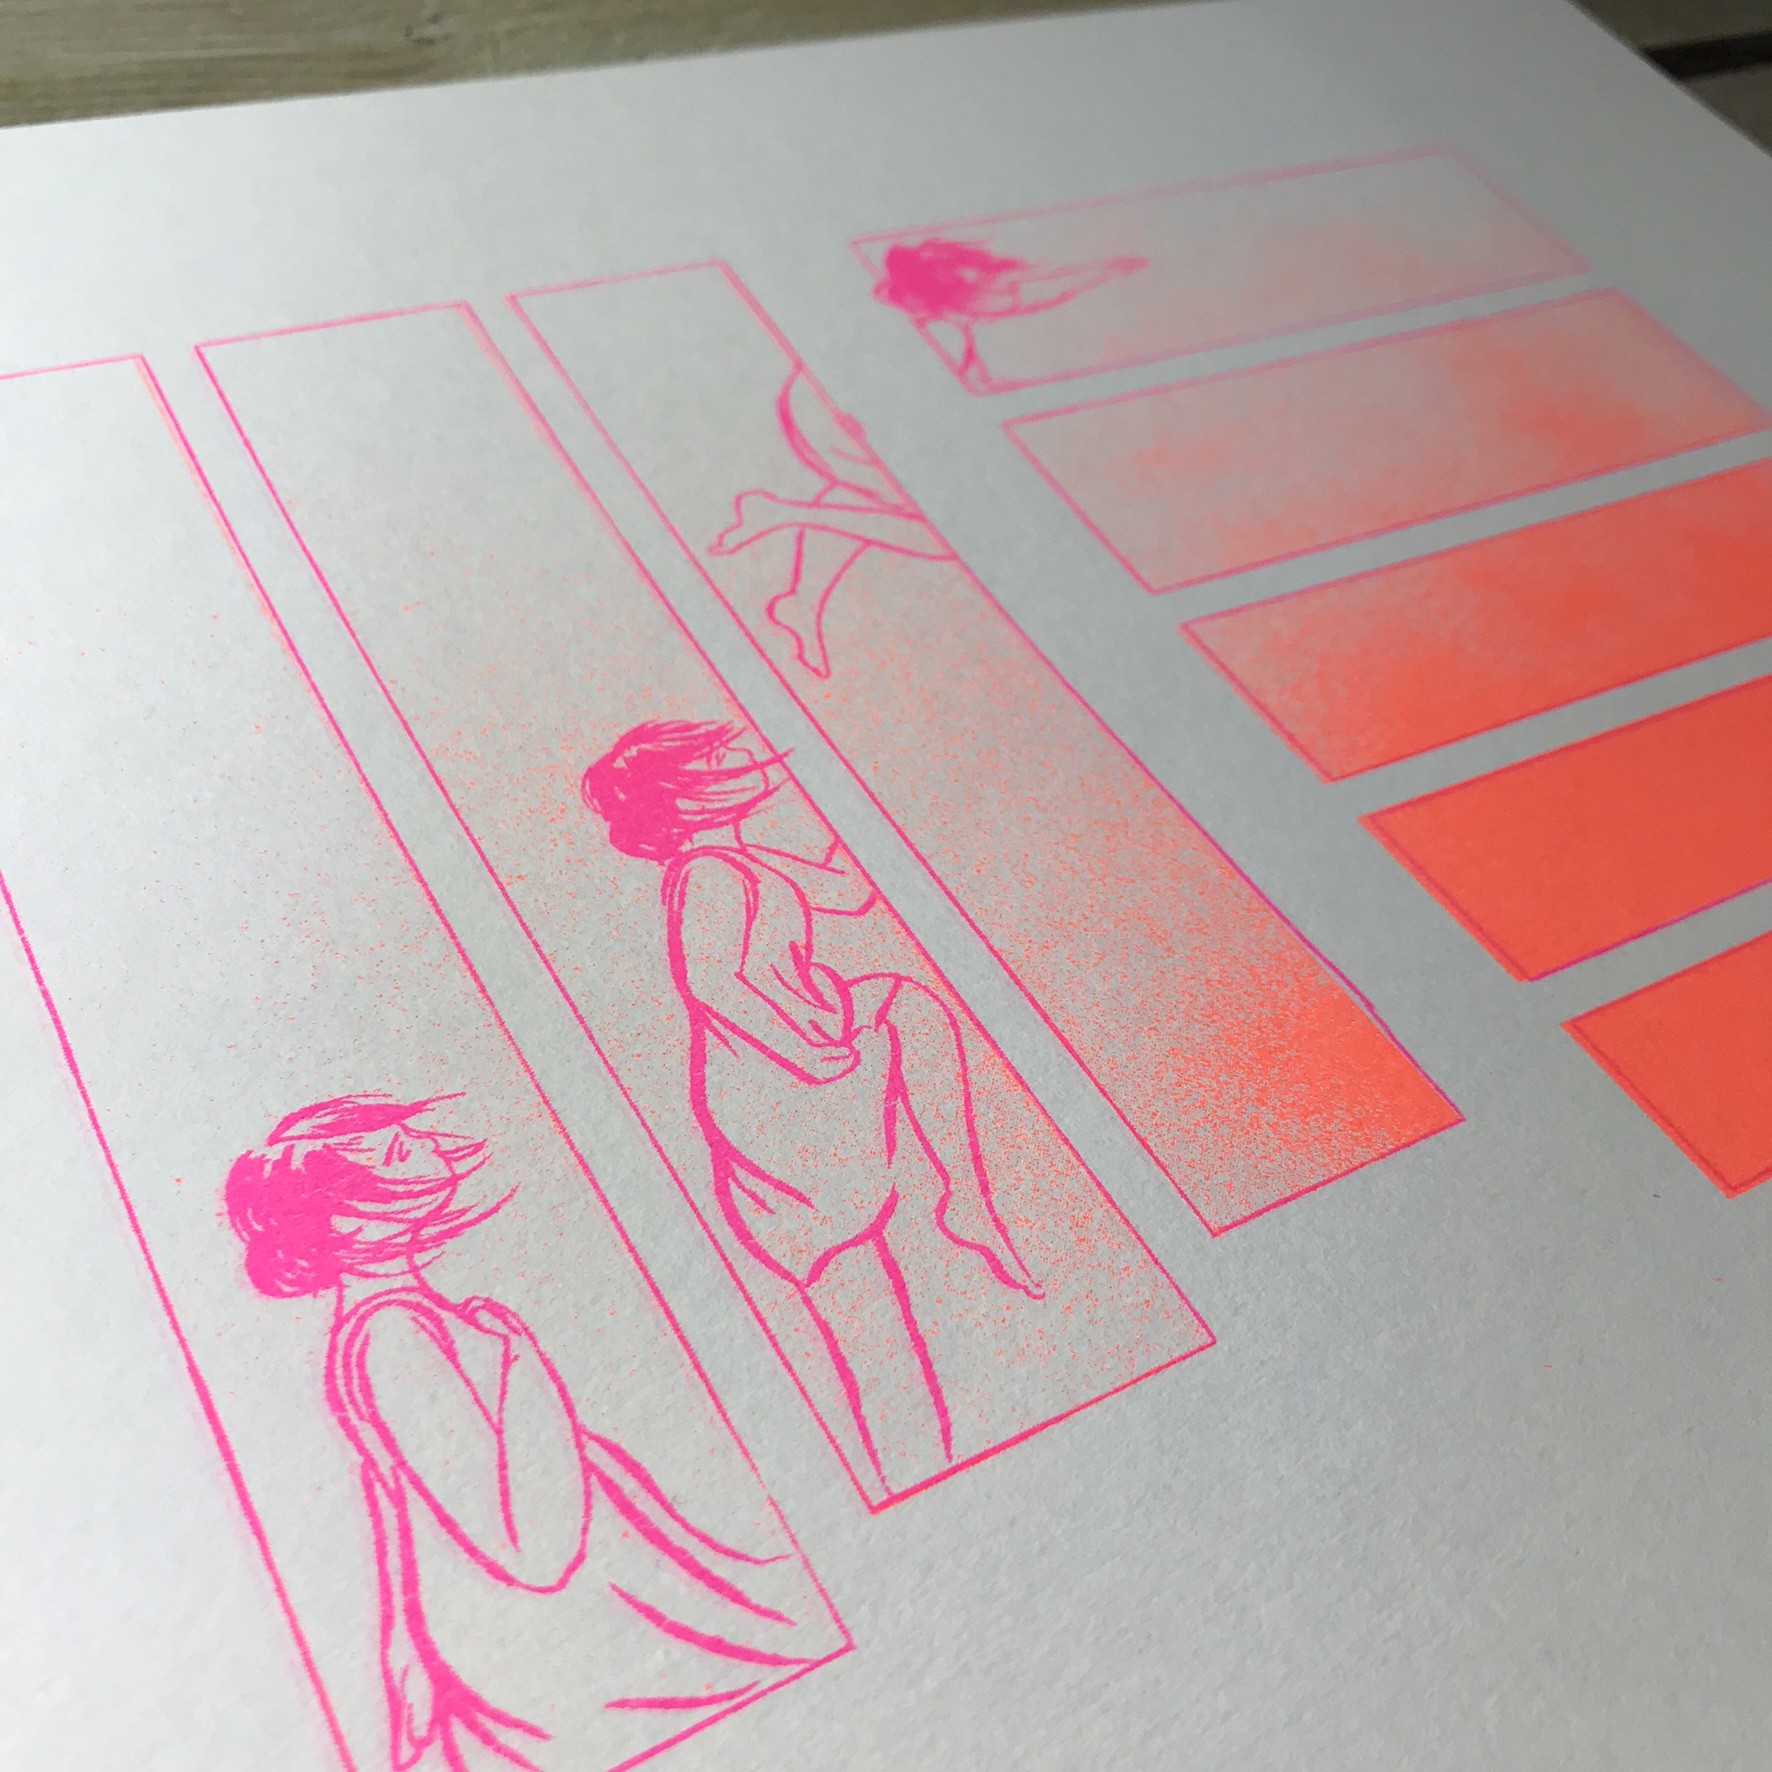 Reach A4 Print in orange/pink - finer detail